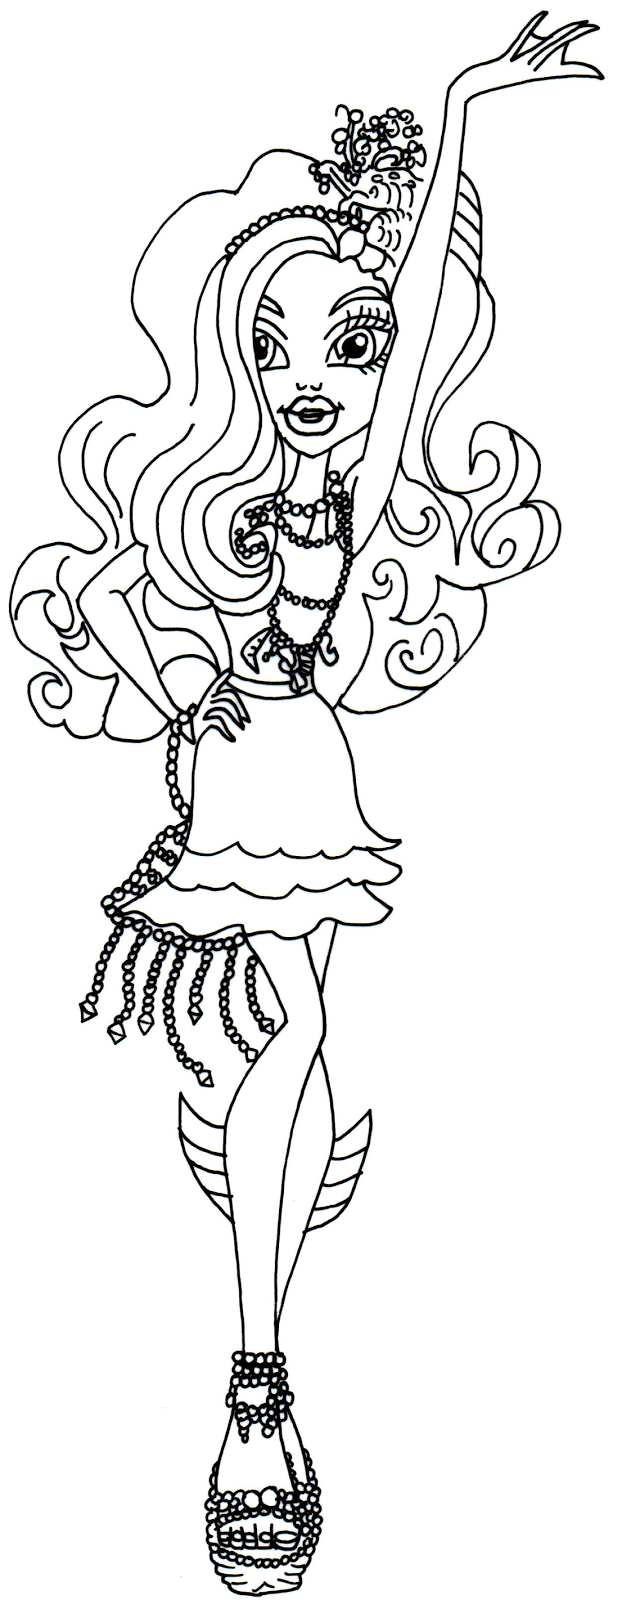 Monster high 13 de beste kleurplaten for Monster high coloring pages 13 wishes